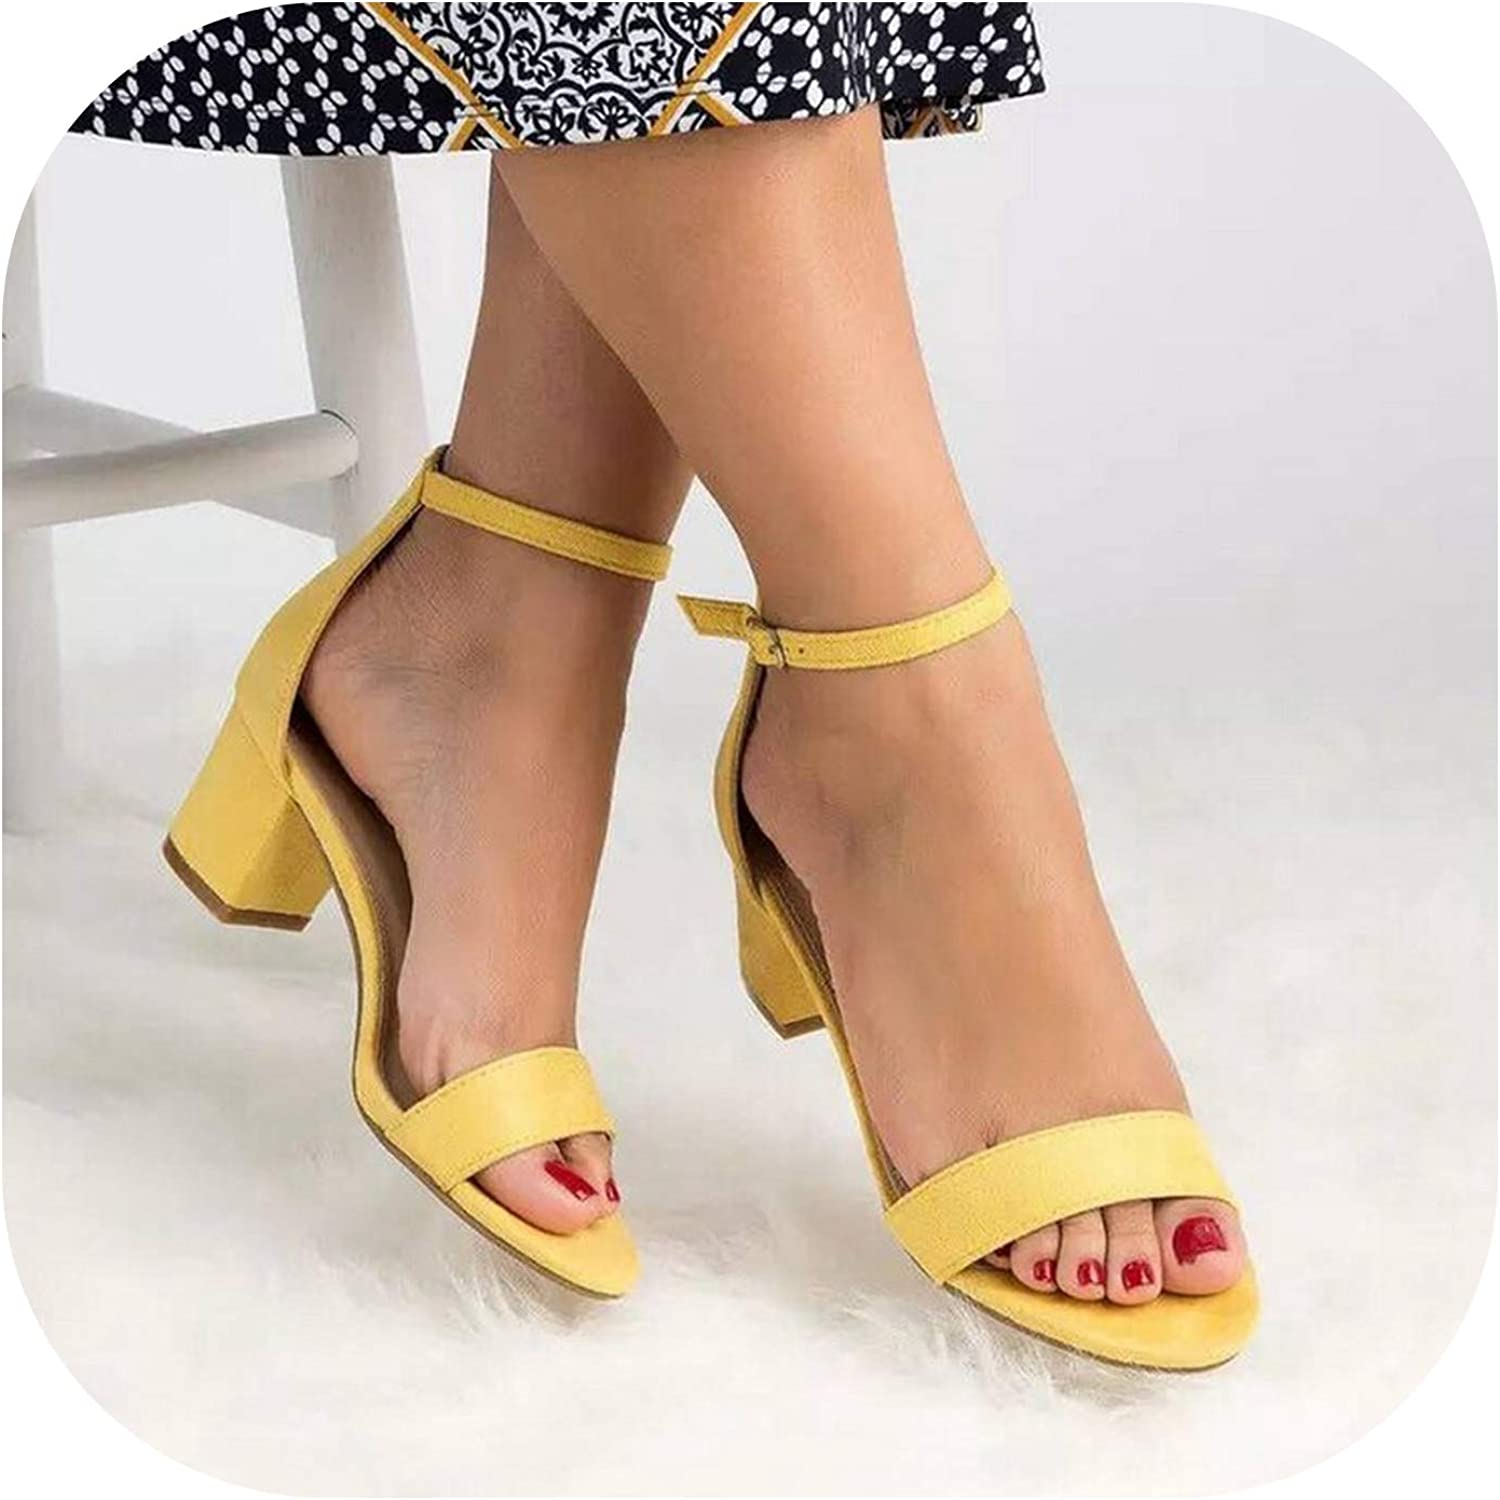 Ankle Strap Heels Sandals Leopard Print Women Open Toe Chunky High Heels Dress Sandals